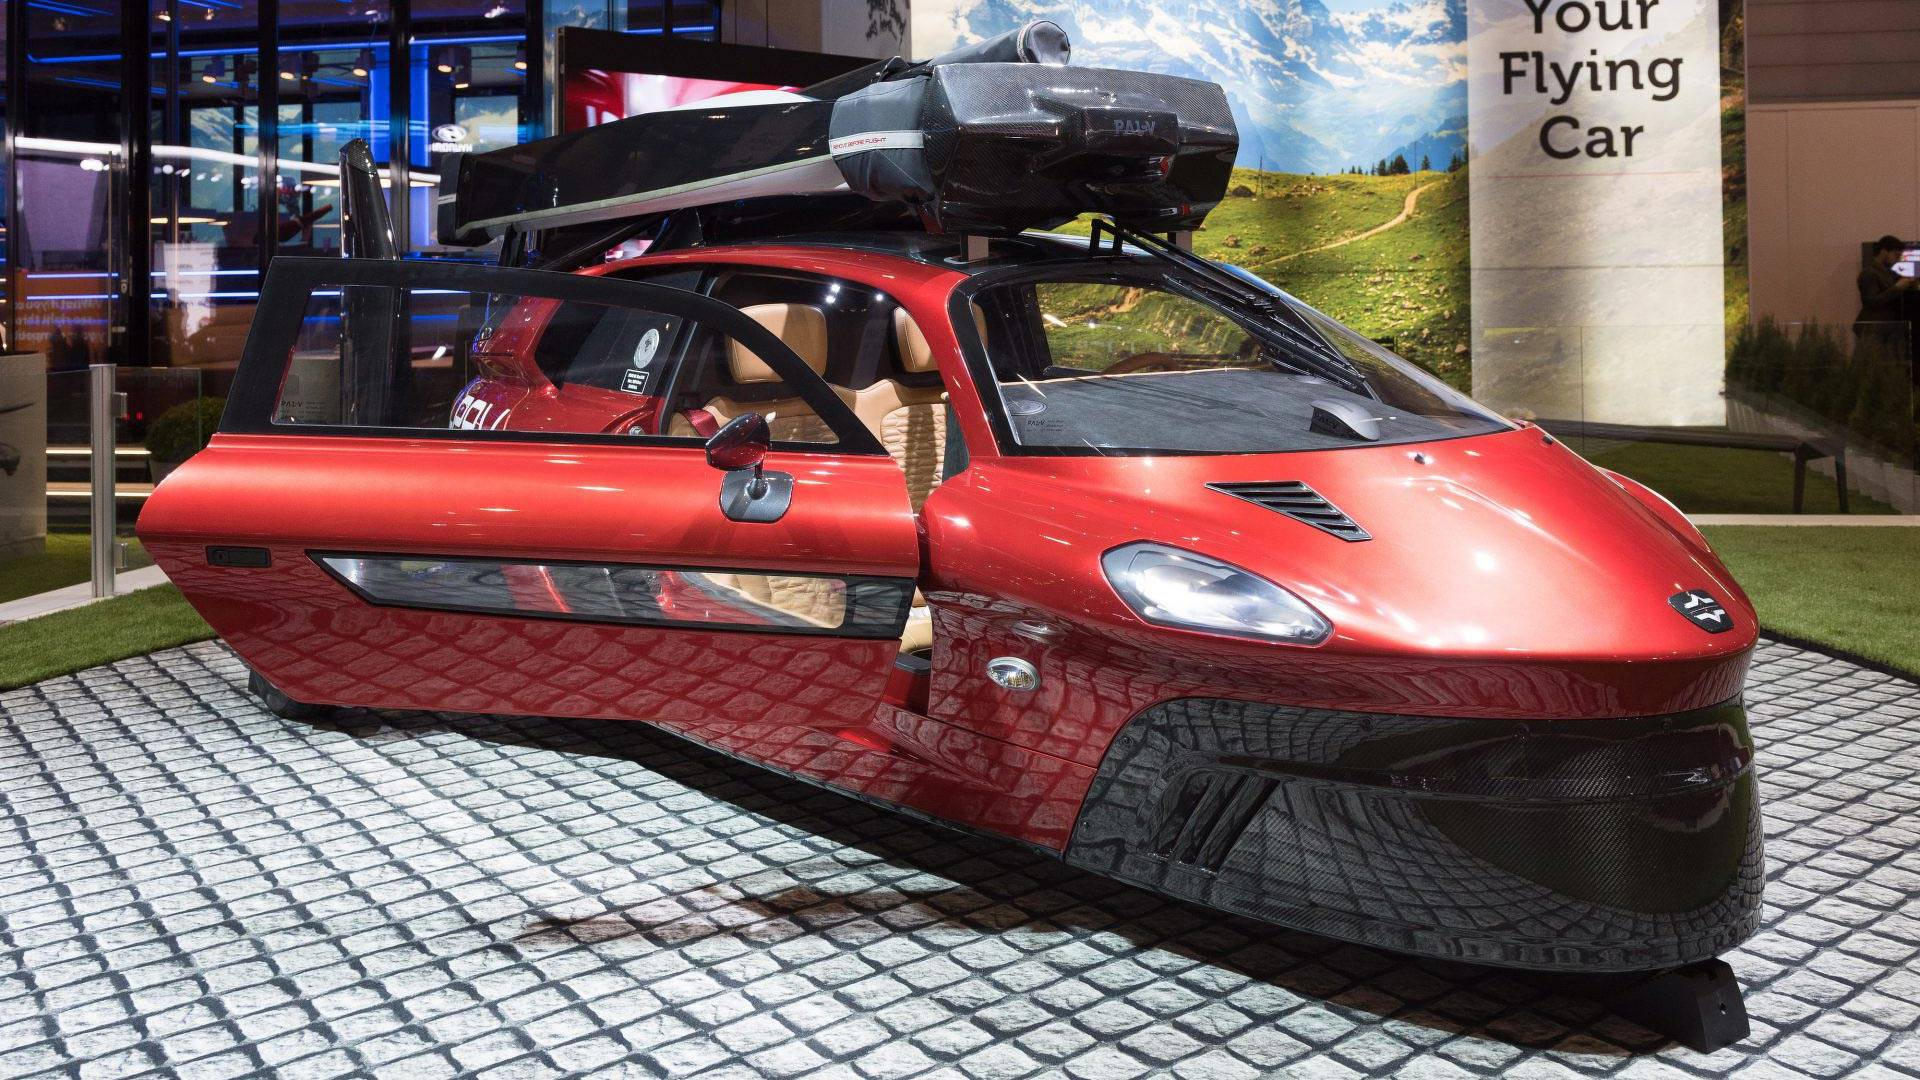 pal-v-liberty-flying-car-geneva-2018 (1)